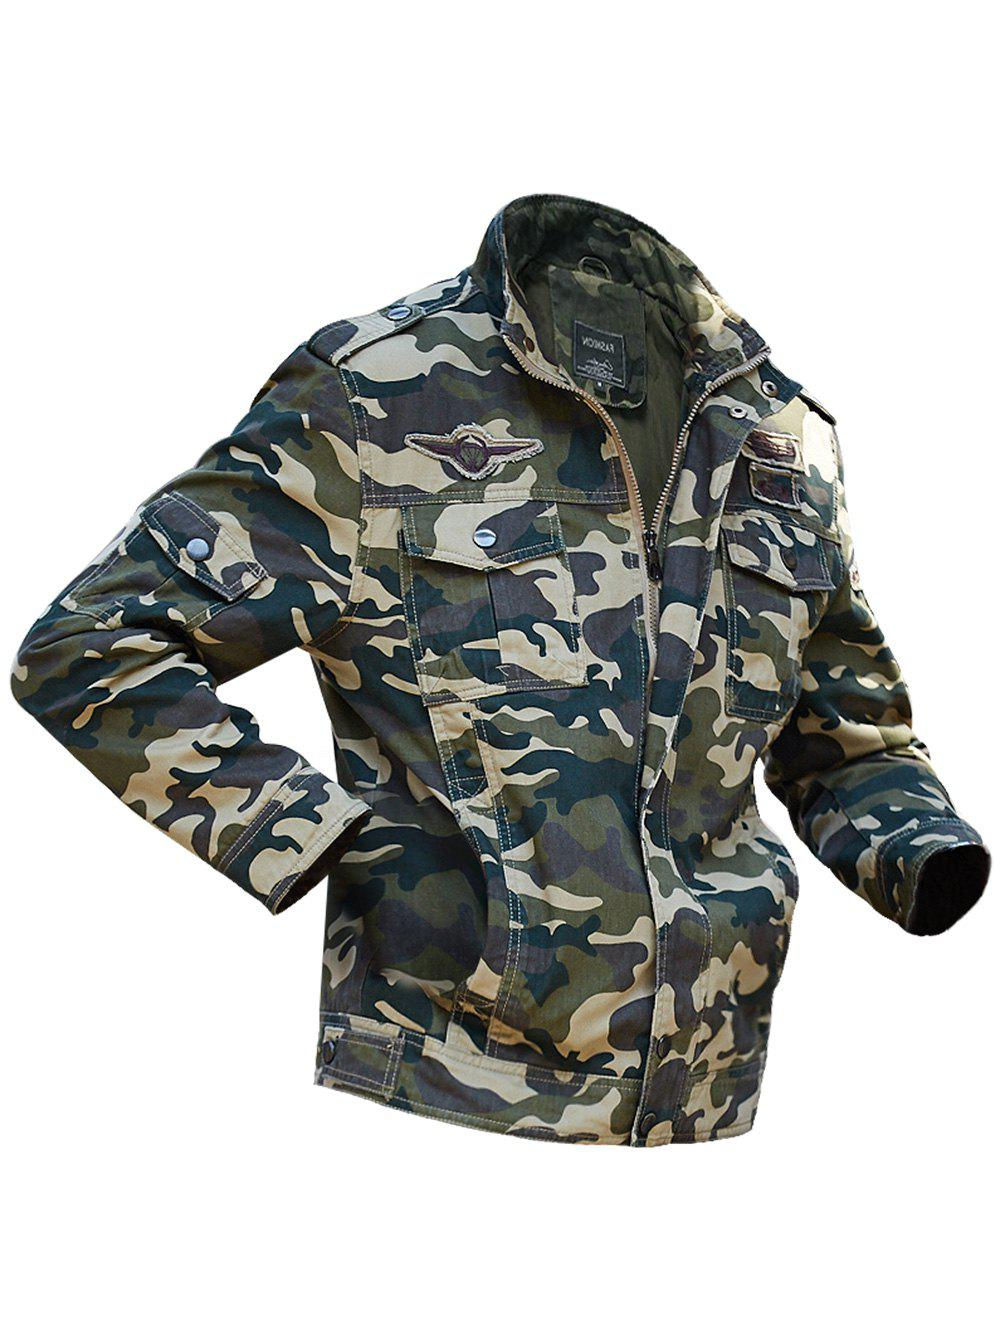 Affordable Appliques Camouflage Printed Jacket